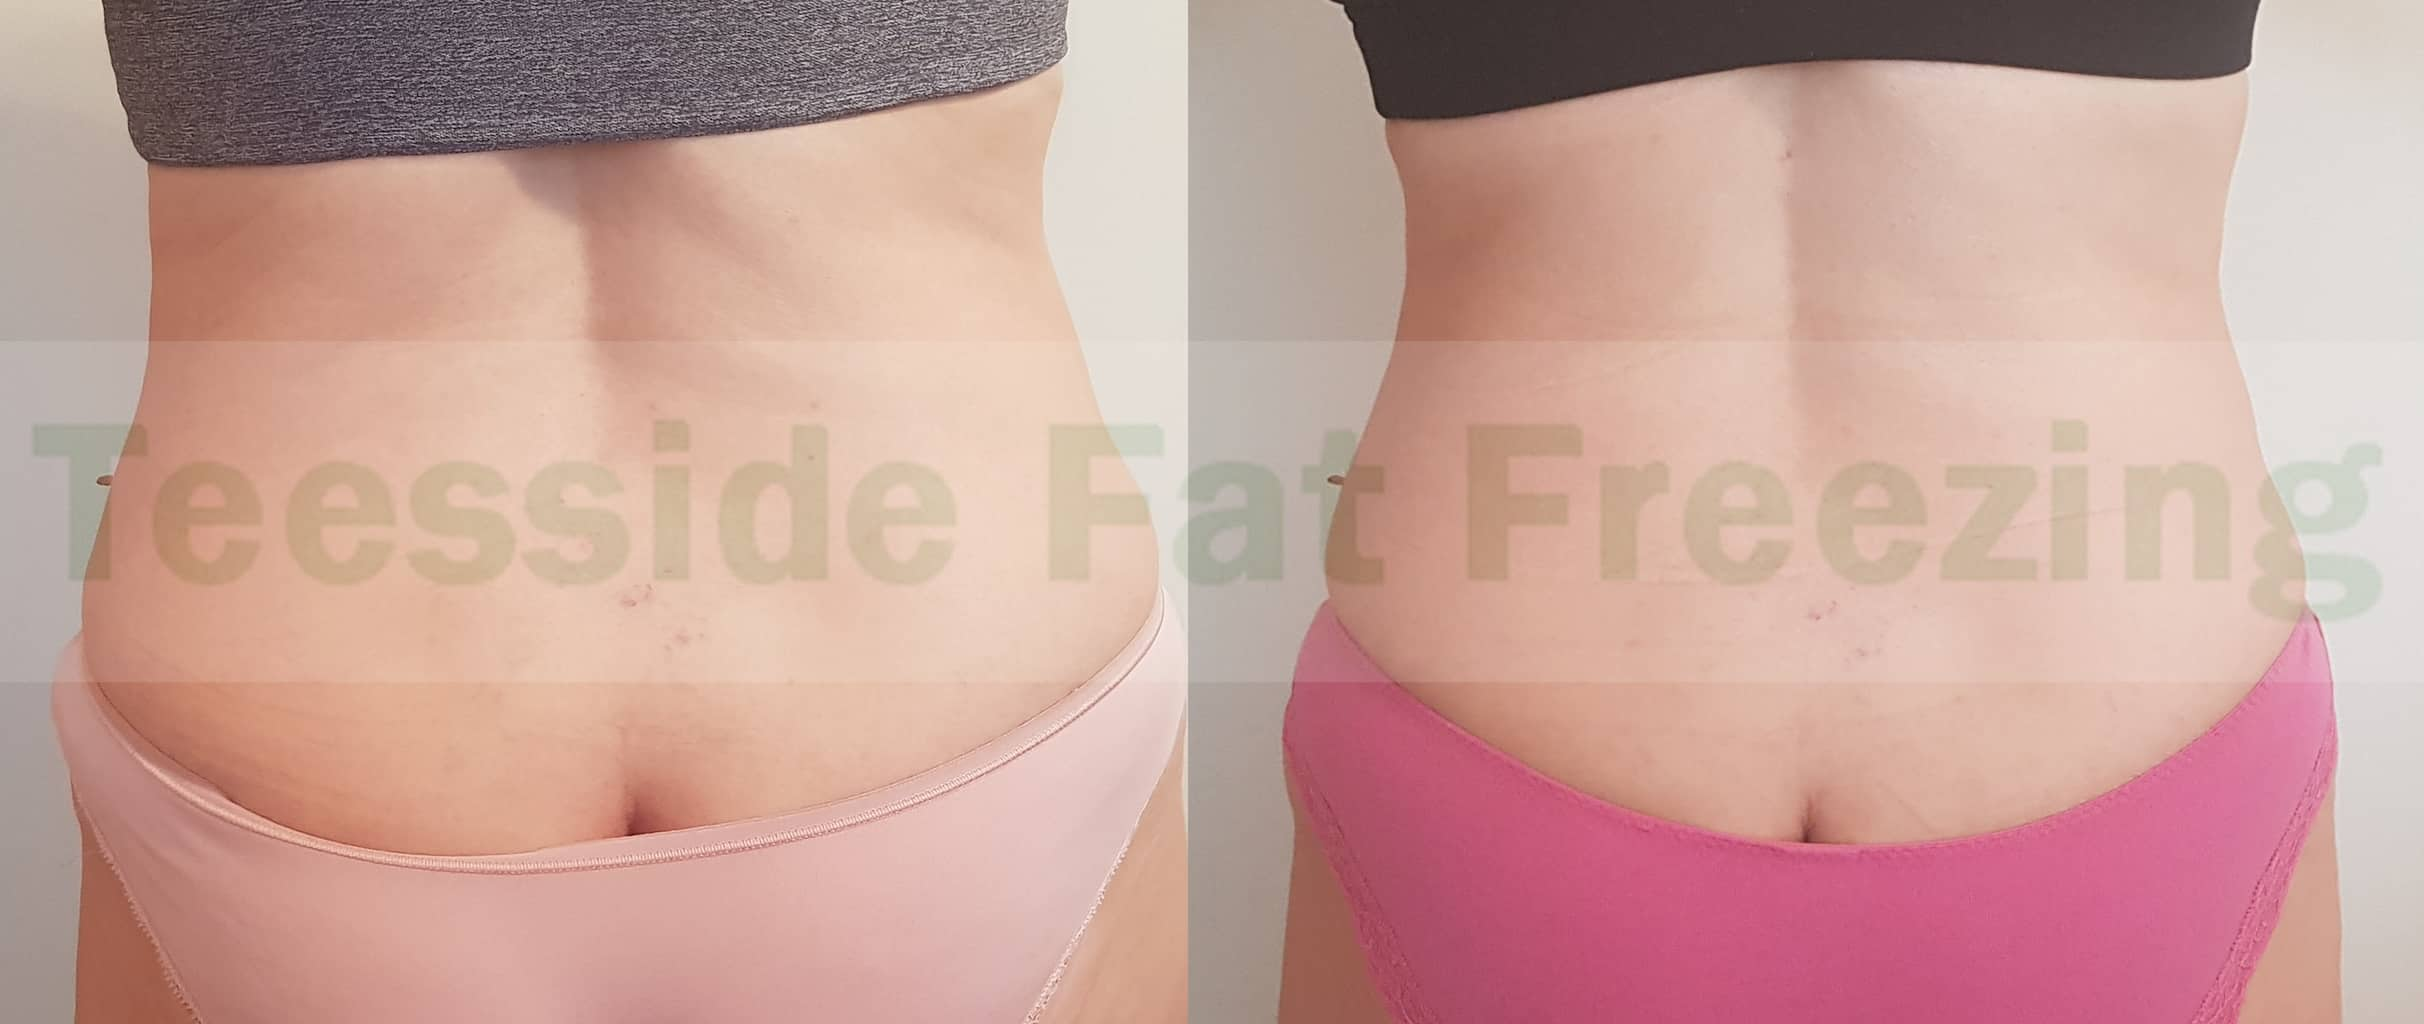 Flanks 5 weeks before and after fat freezing